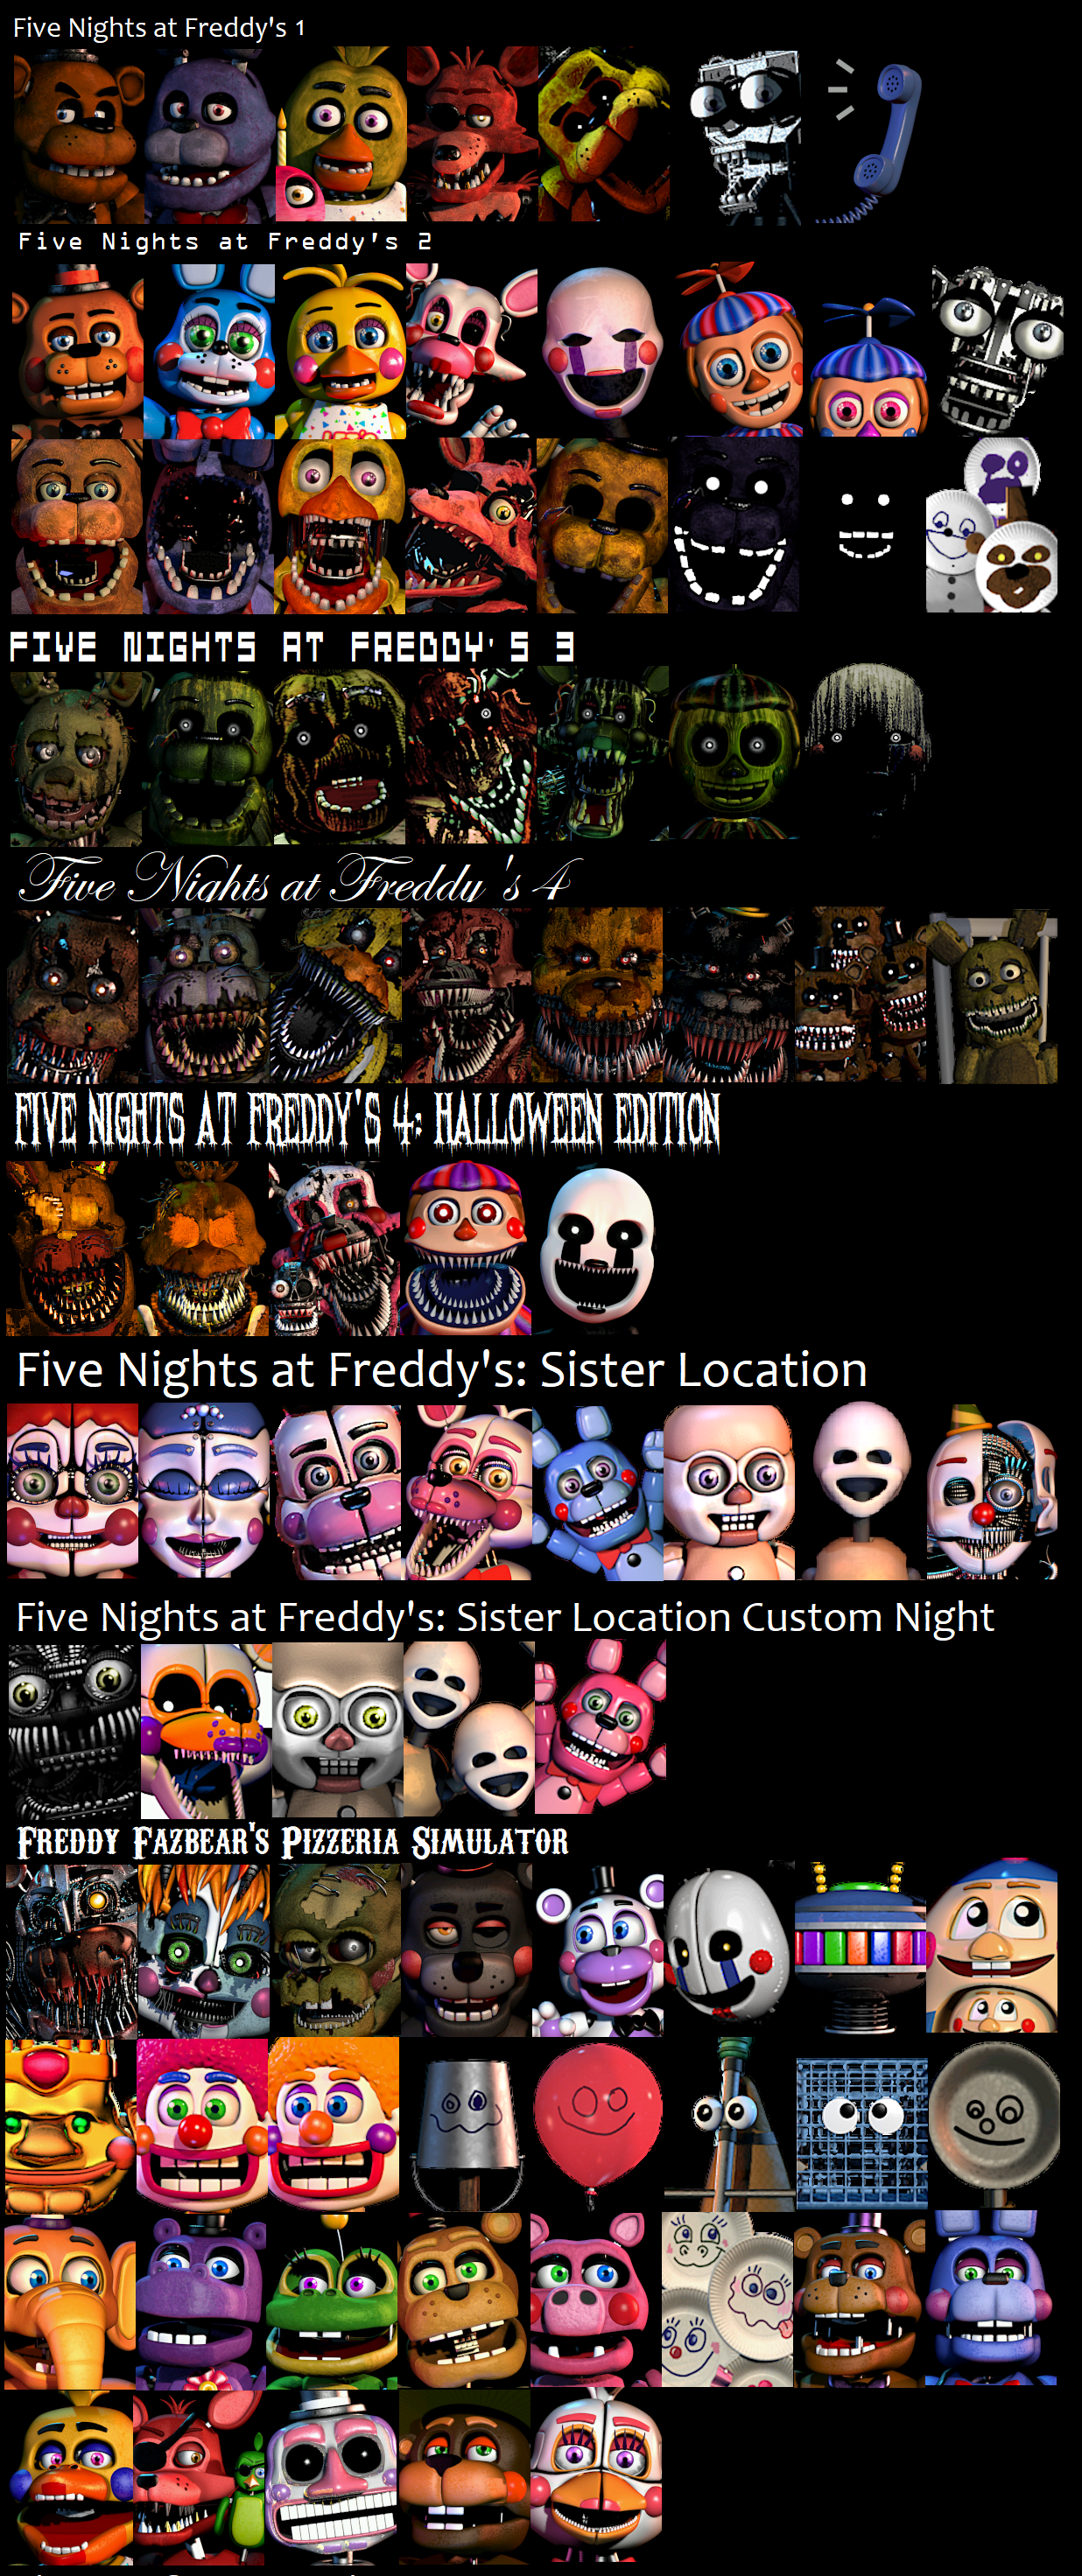 Five Nights At Freddy's Characters Names And Pictures : nights, freddy's, characters, names, pictures, Listed, Every, Character, Game,, Excluding, World, Fivenightsatfreddys